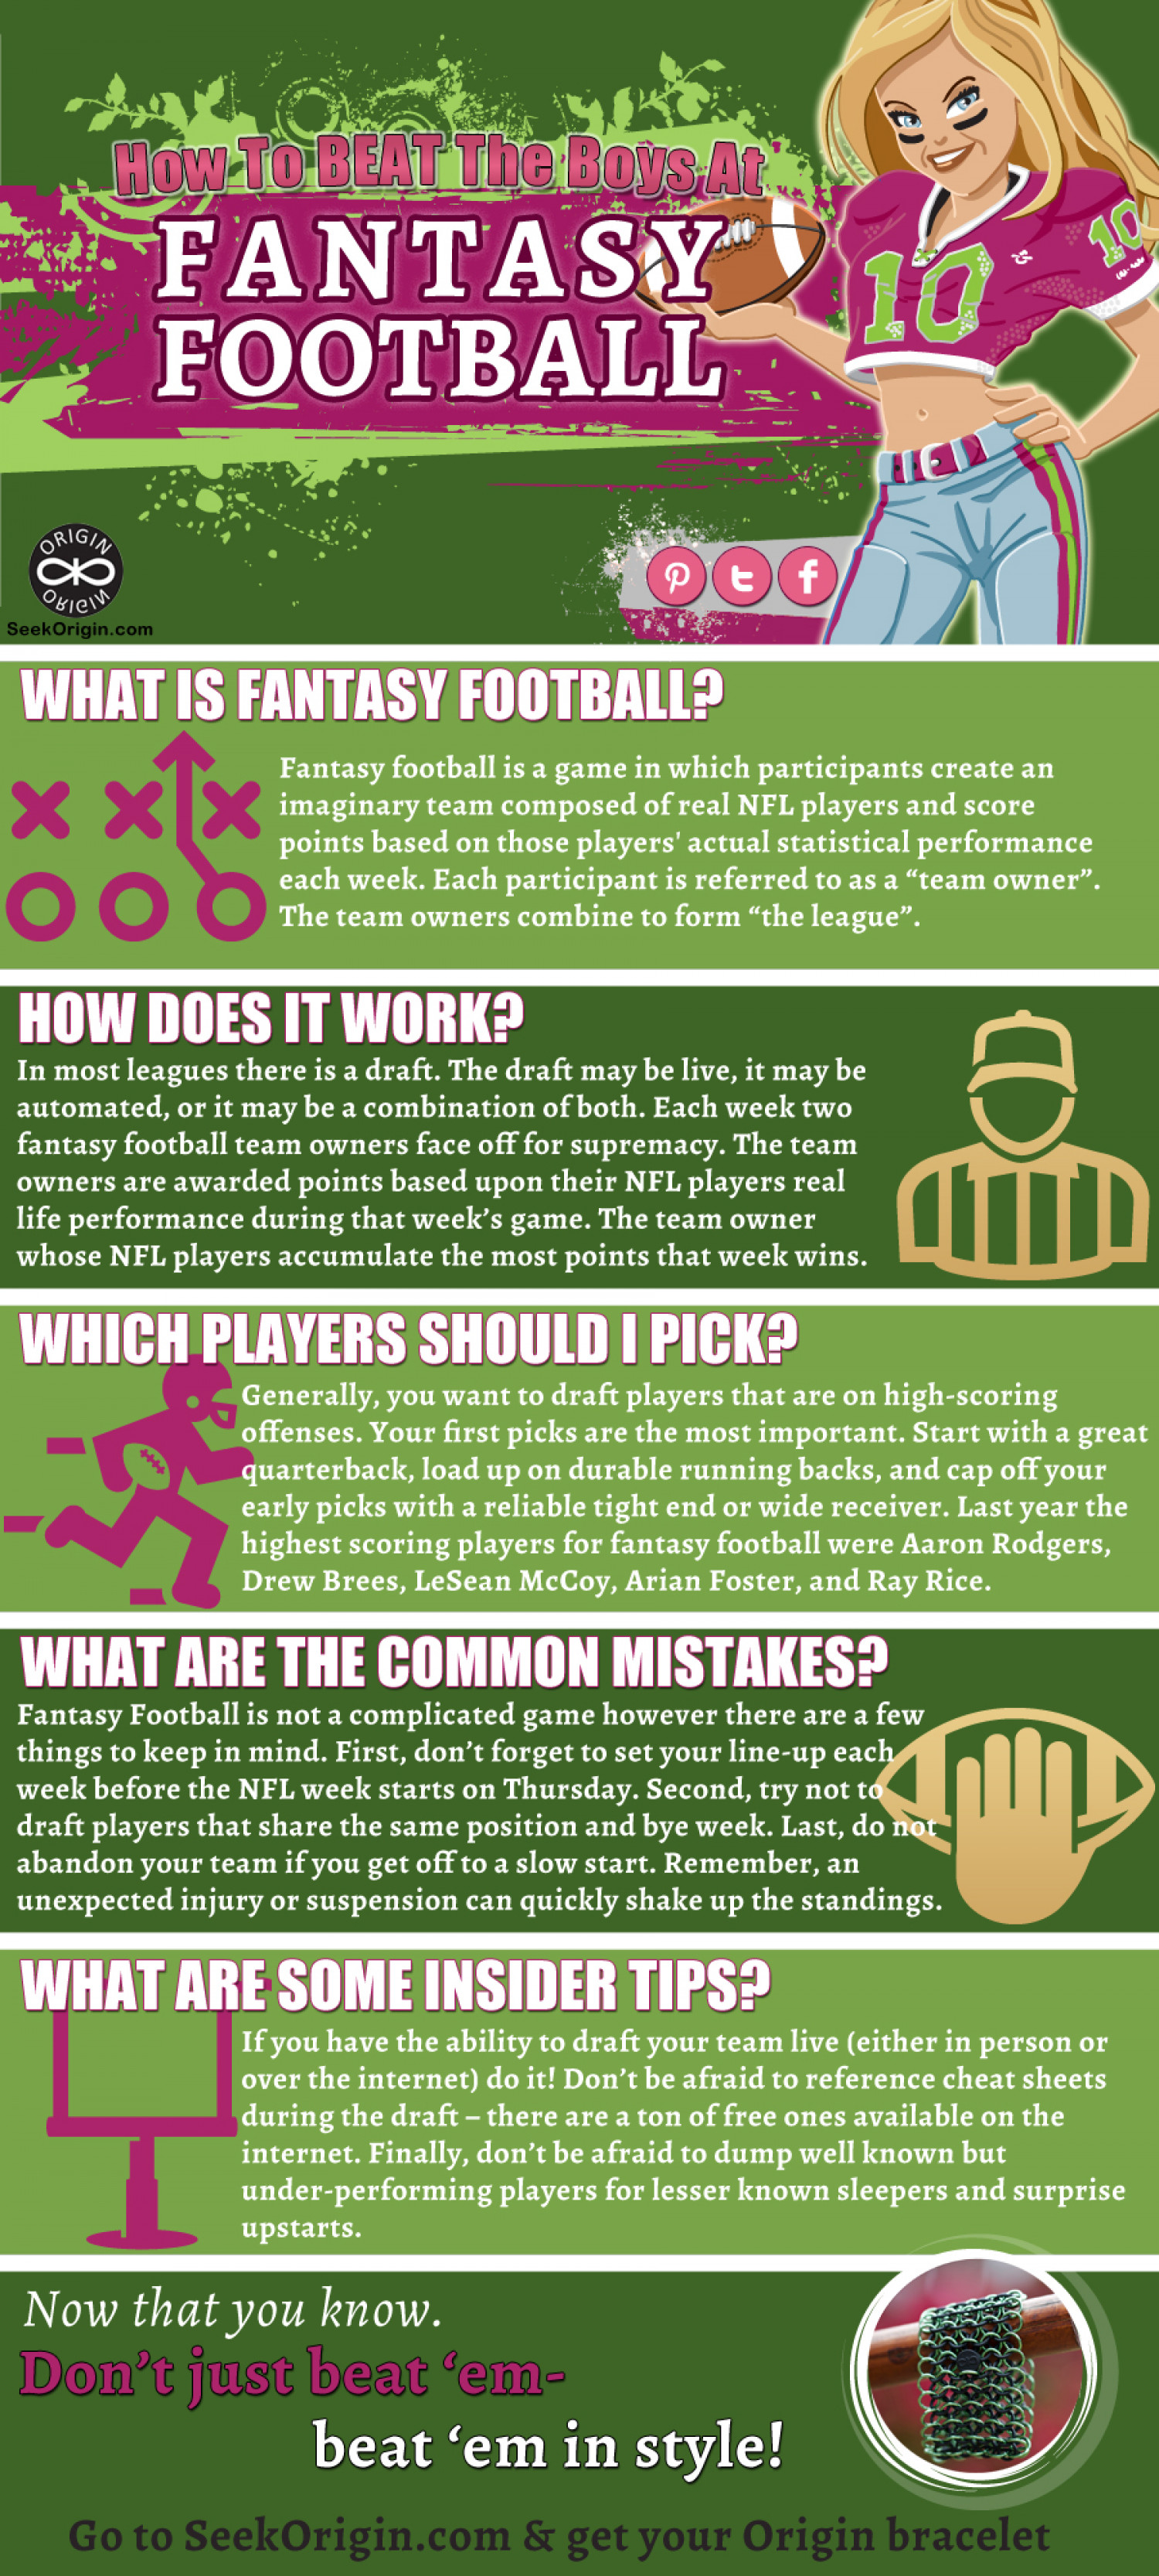 How to Play Fantasy Football: The Girls Guide Infographic